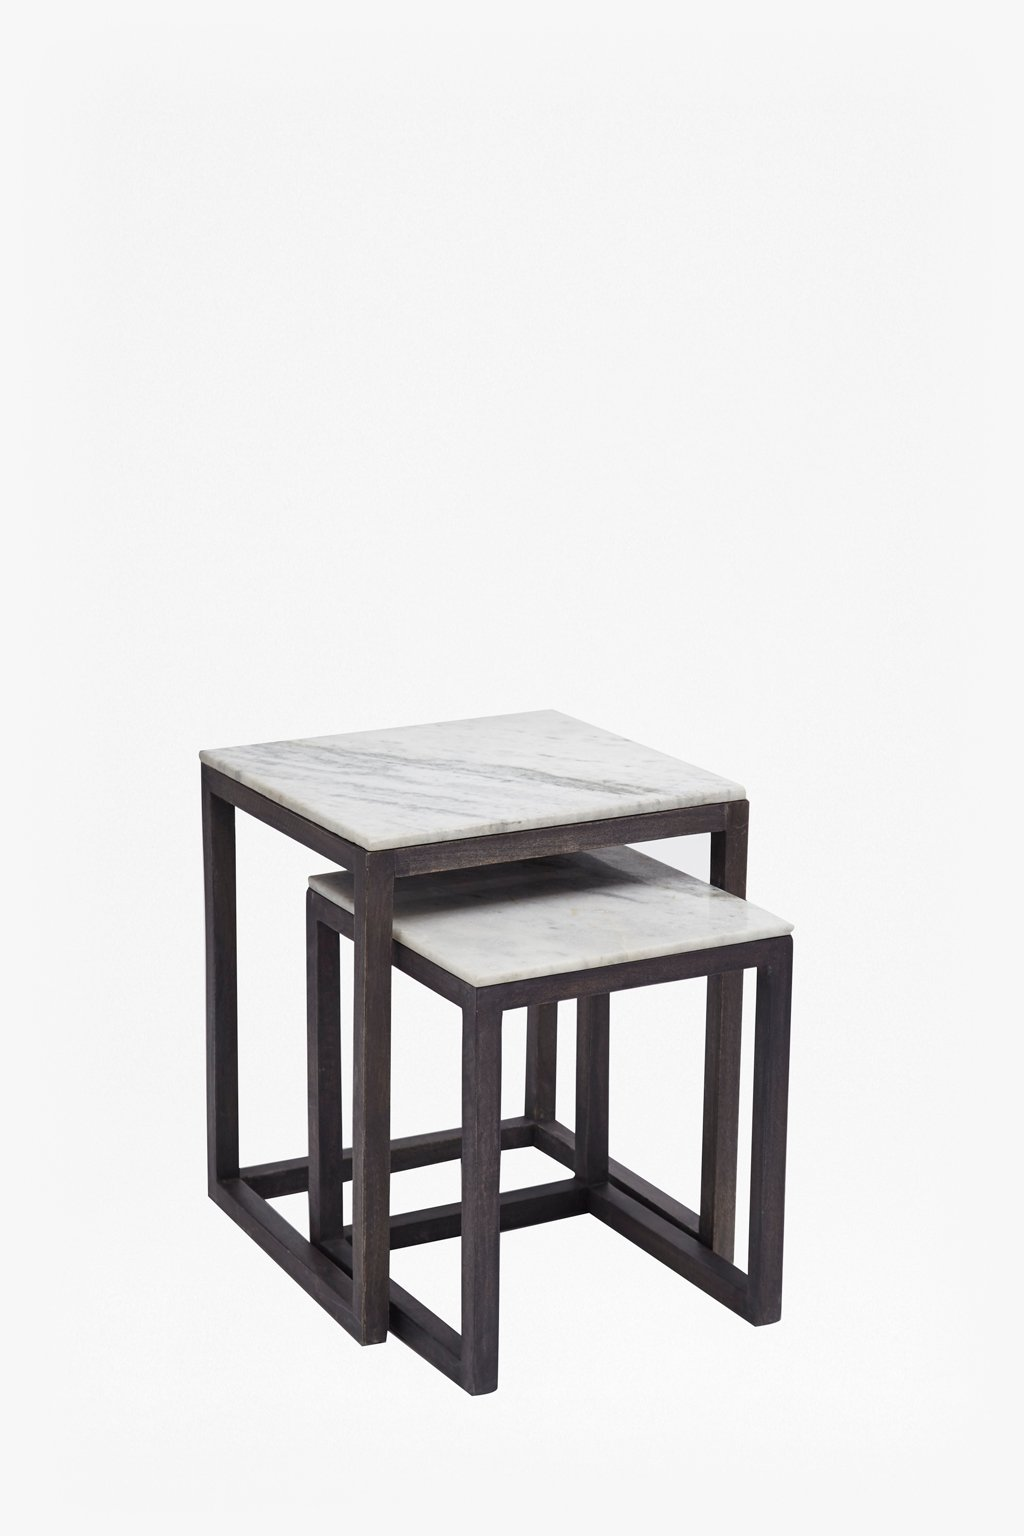 Picture of: Marble Nest Of Tables Collection French Connection